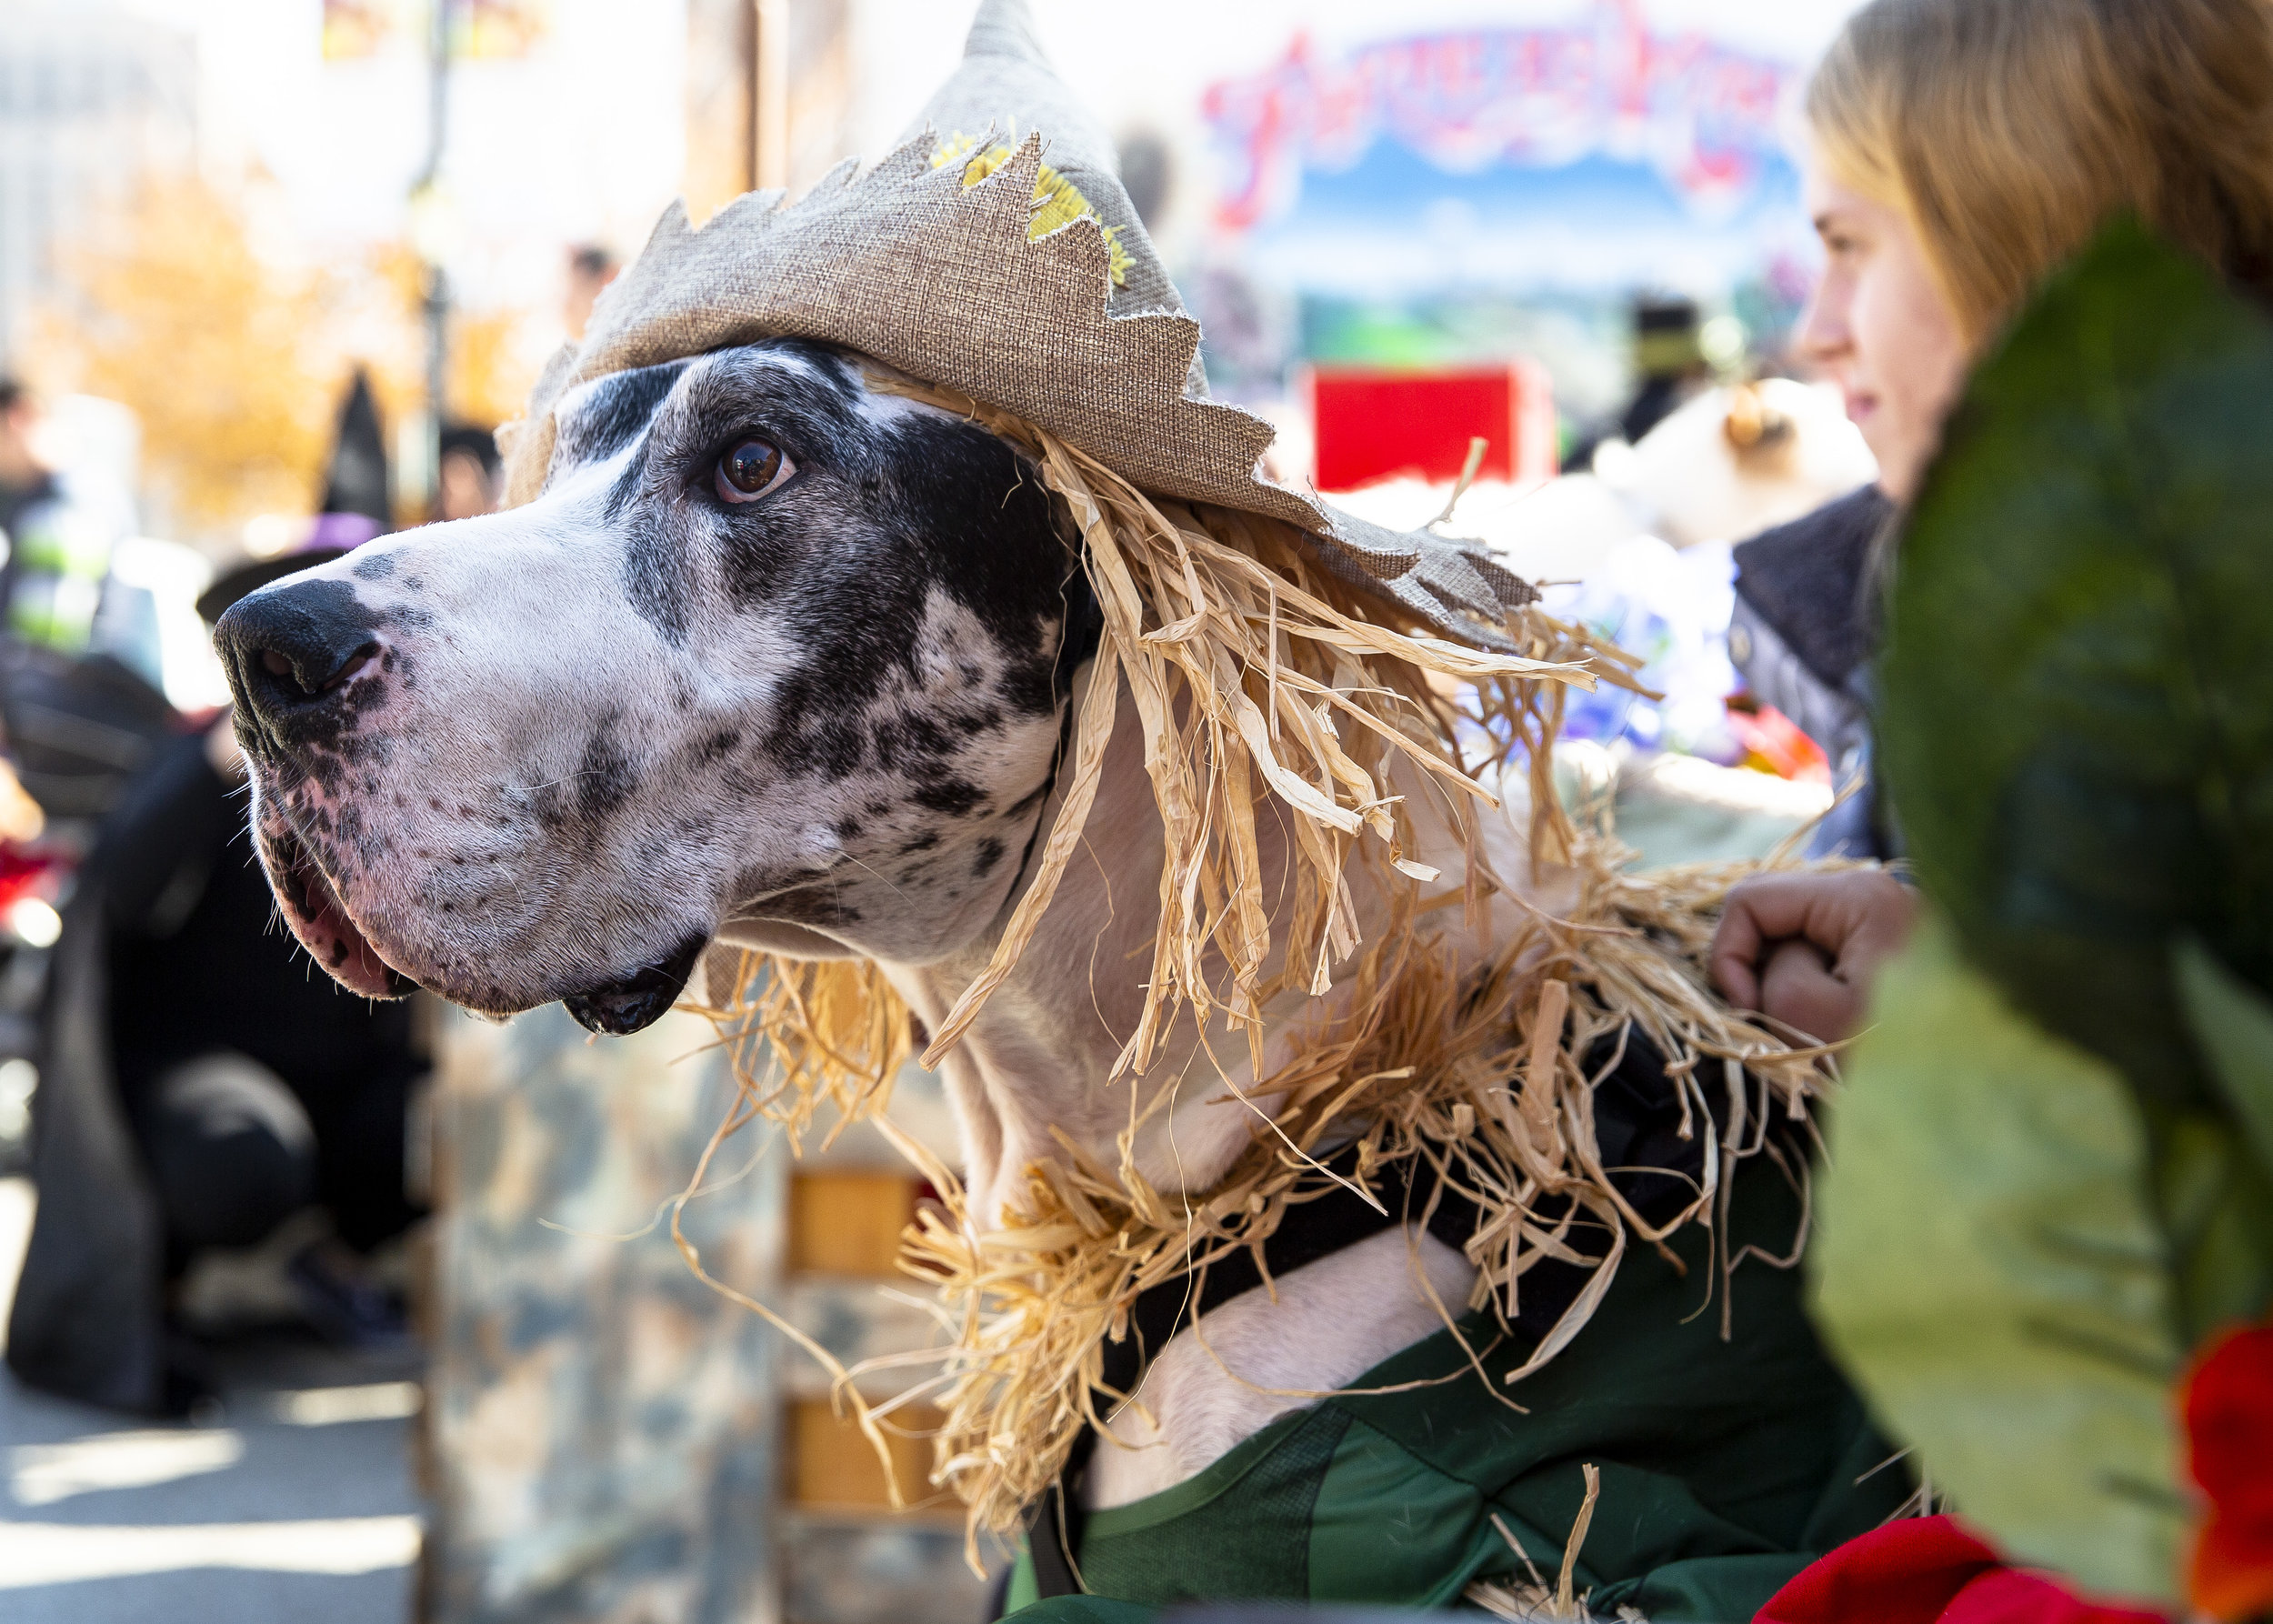 Blues, an easy-going Great Dane owned by Emily and Jason Cinotto, dressed as Scarecrow form the Wizard of Oz. waits for the pet costume portion of Halloween at the Market Saturday, Oct. 27, 2018 at the Old Capitol Farmer's Market in Springfield, Ill. [Rich Saal/The State Journal-Register]